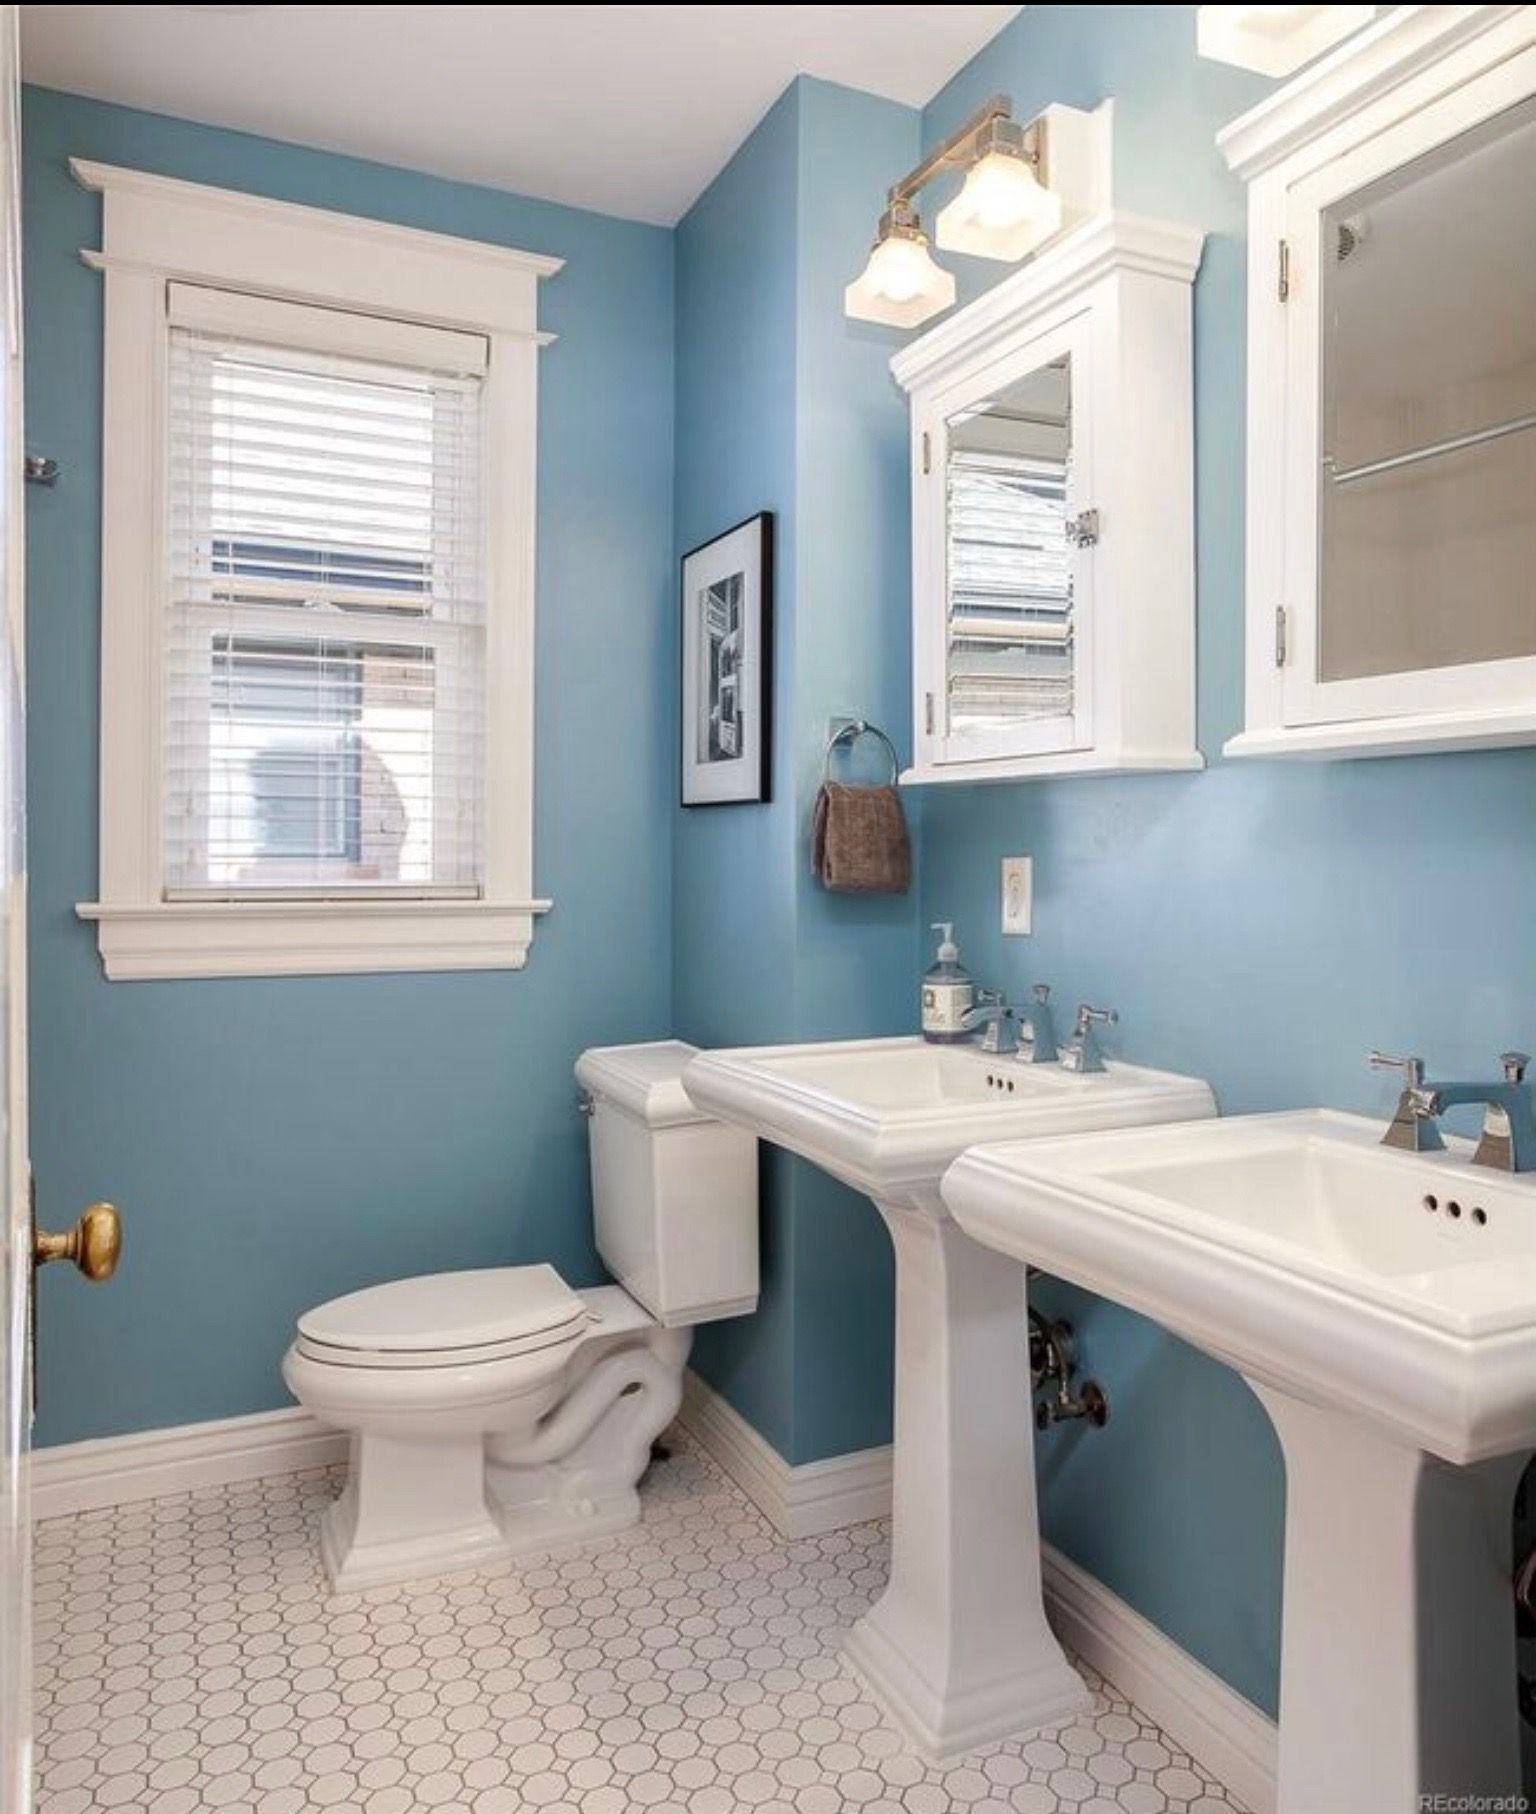 Bathroom Ideas How Much Does It Cost To Remodel A Small Bathroom Smallbathroomideas Bathroomdesignideas Bathroom Mirror Design Bathroom Design Layout Best Bathroom Designs